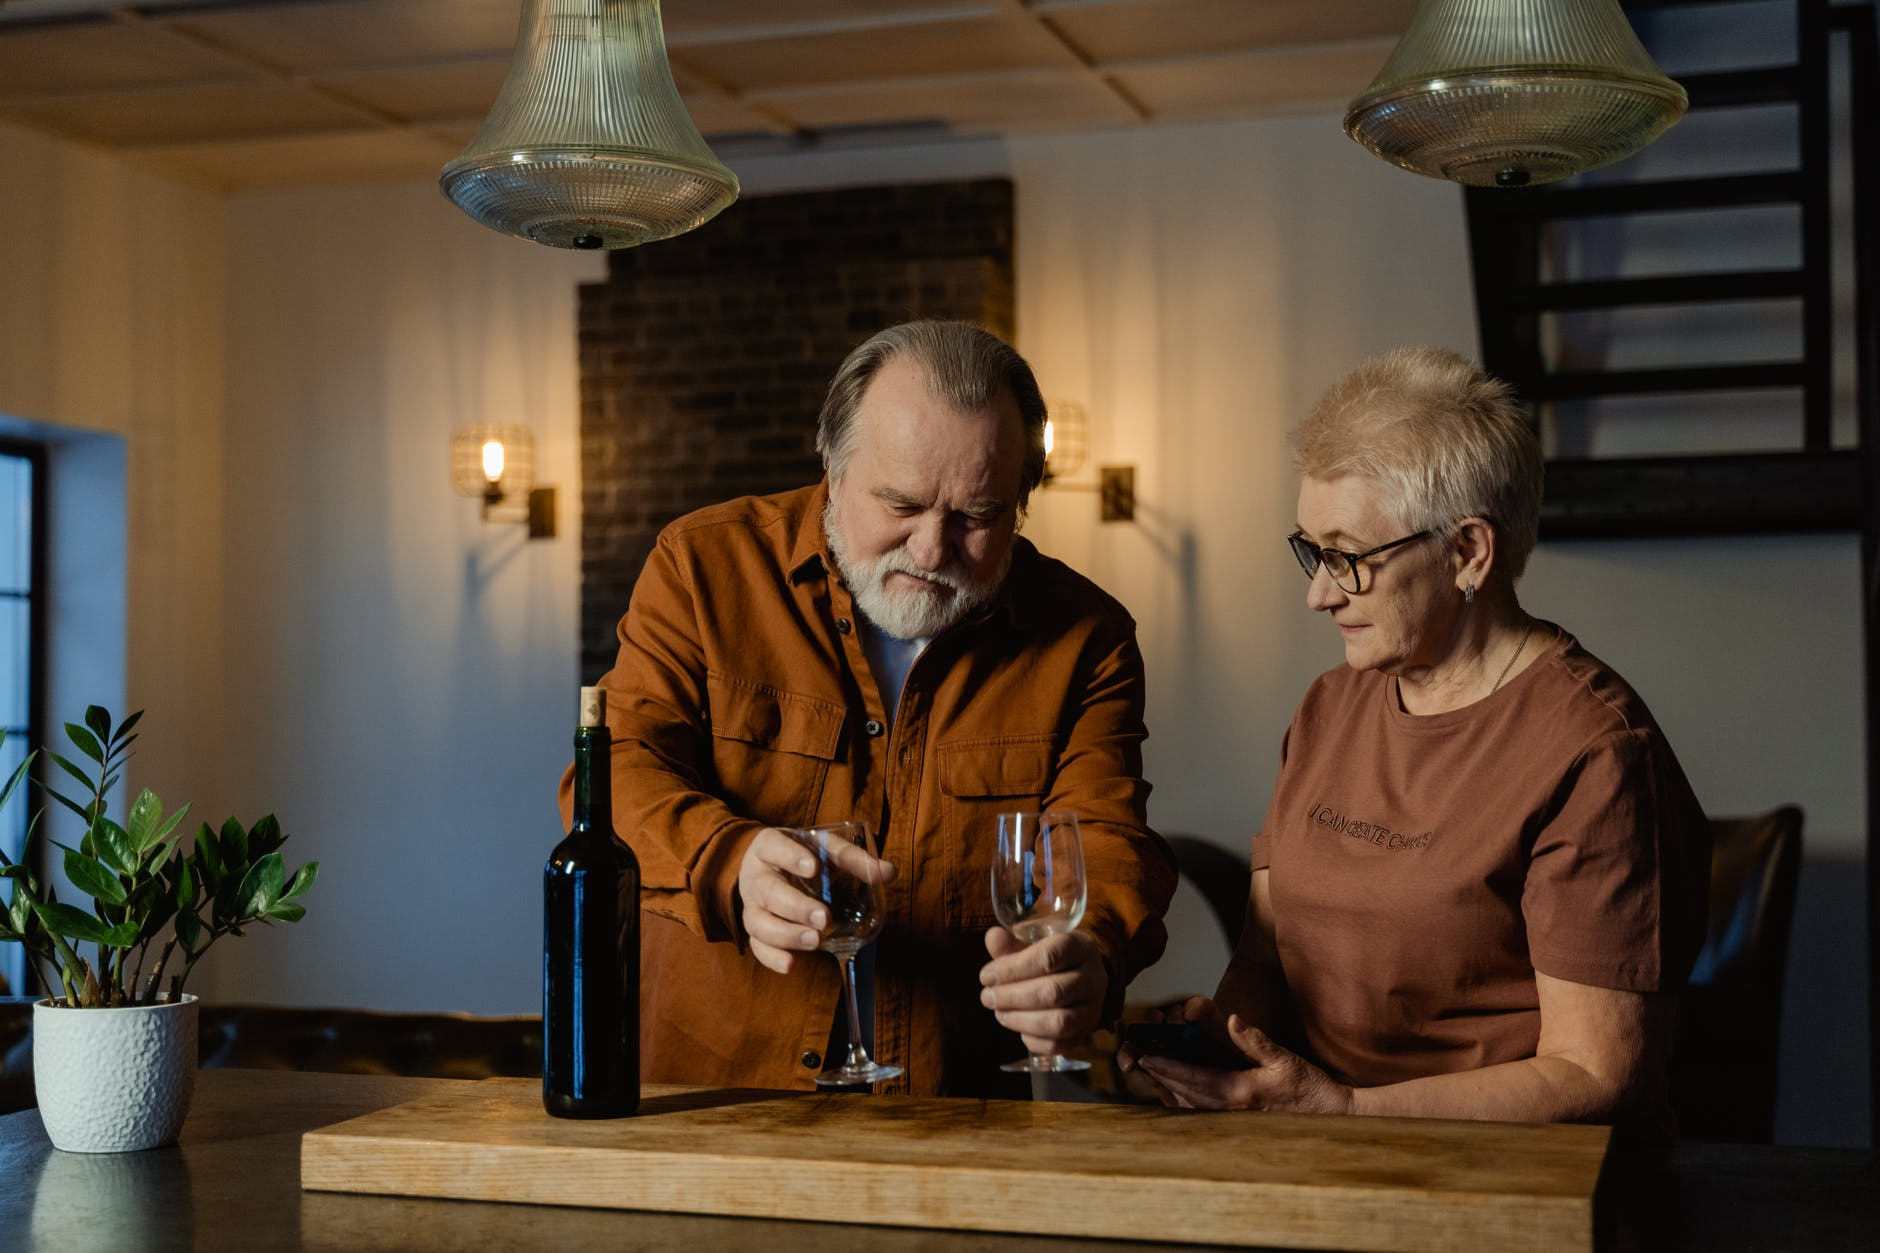 man in brown long sleeve shirt holding wine glasses